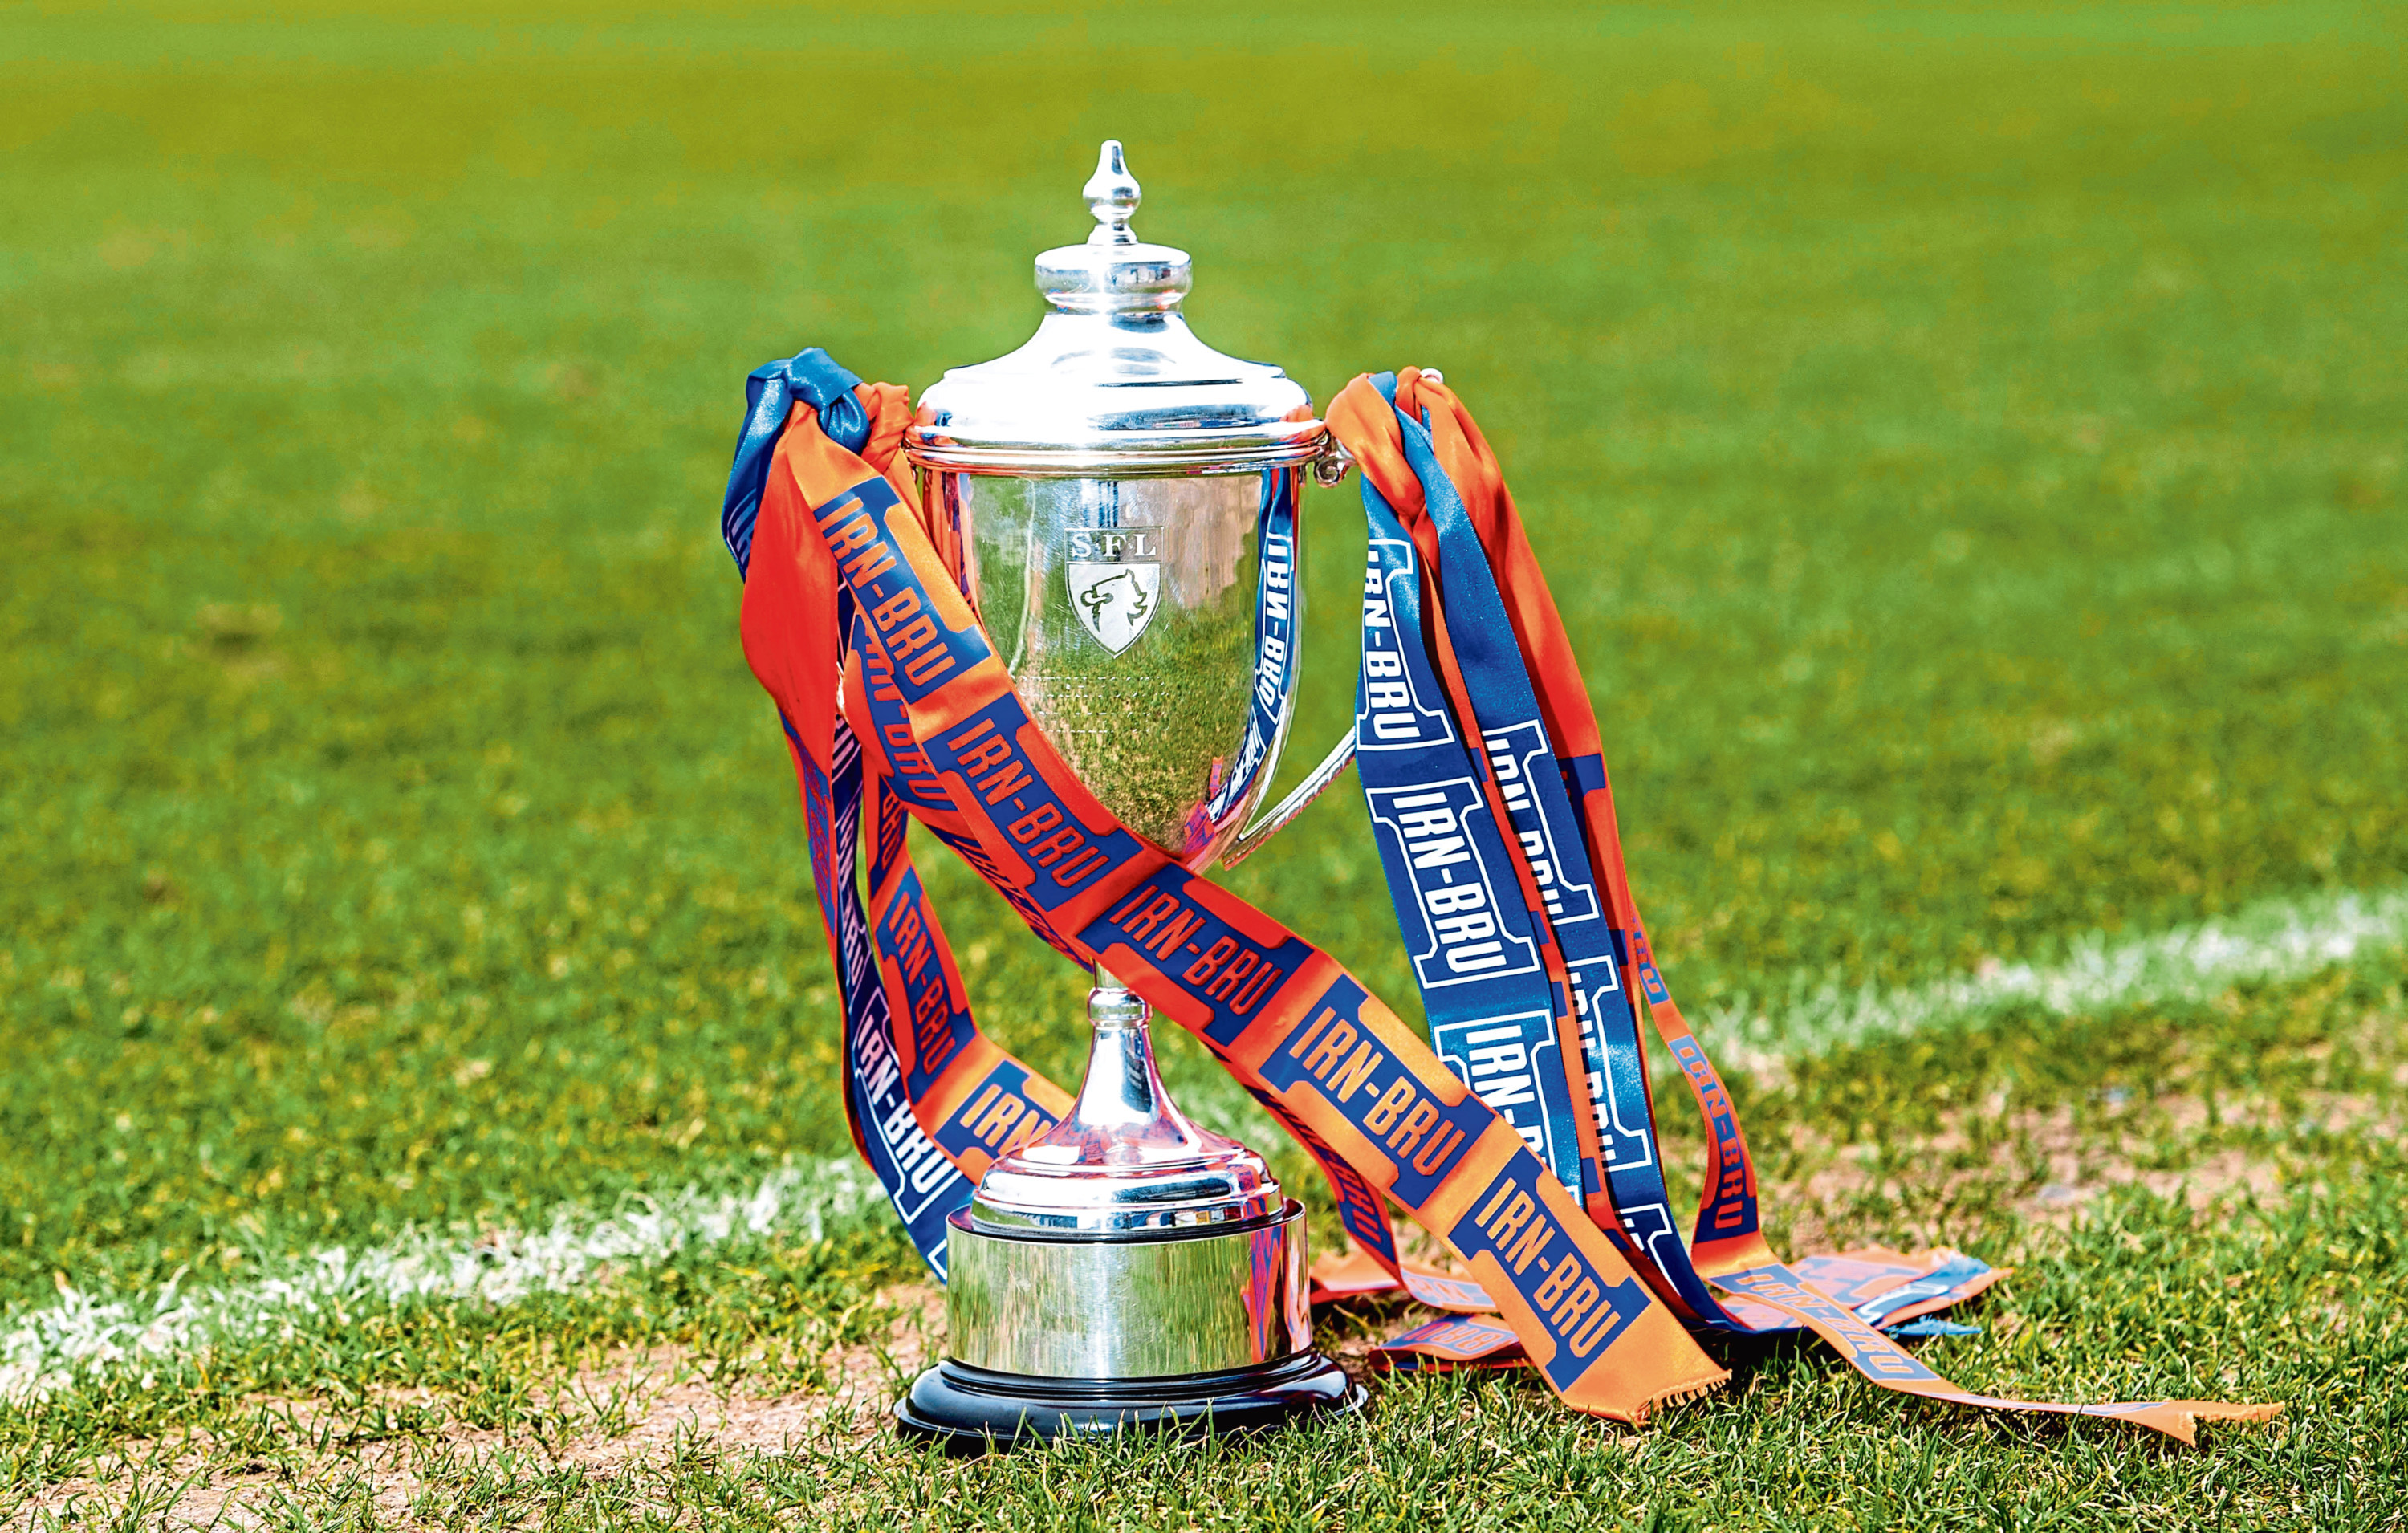 The Challenge Cup trophy